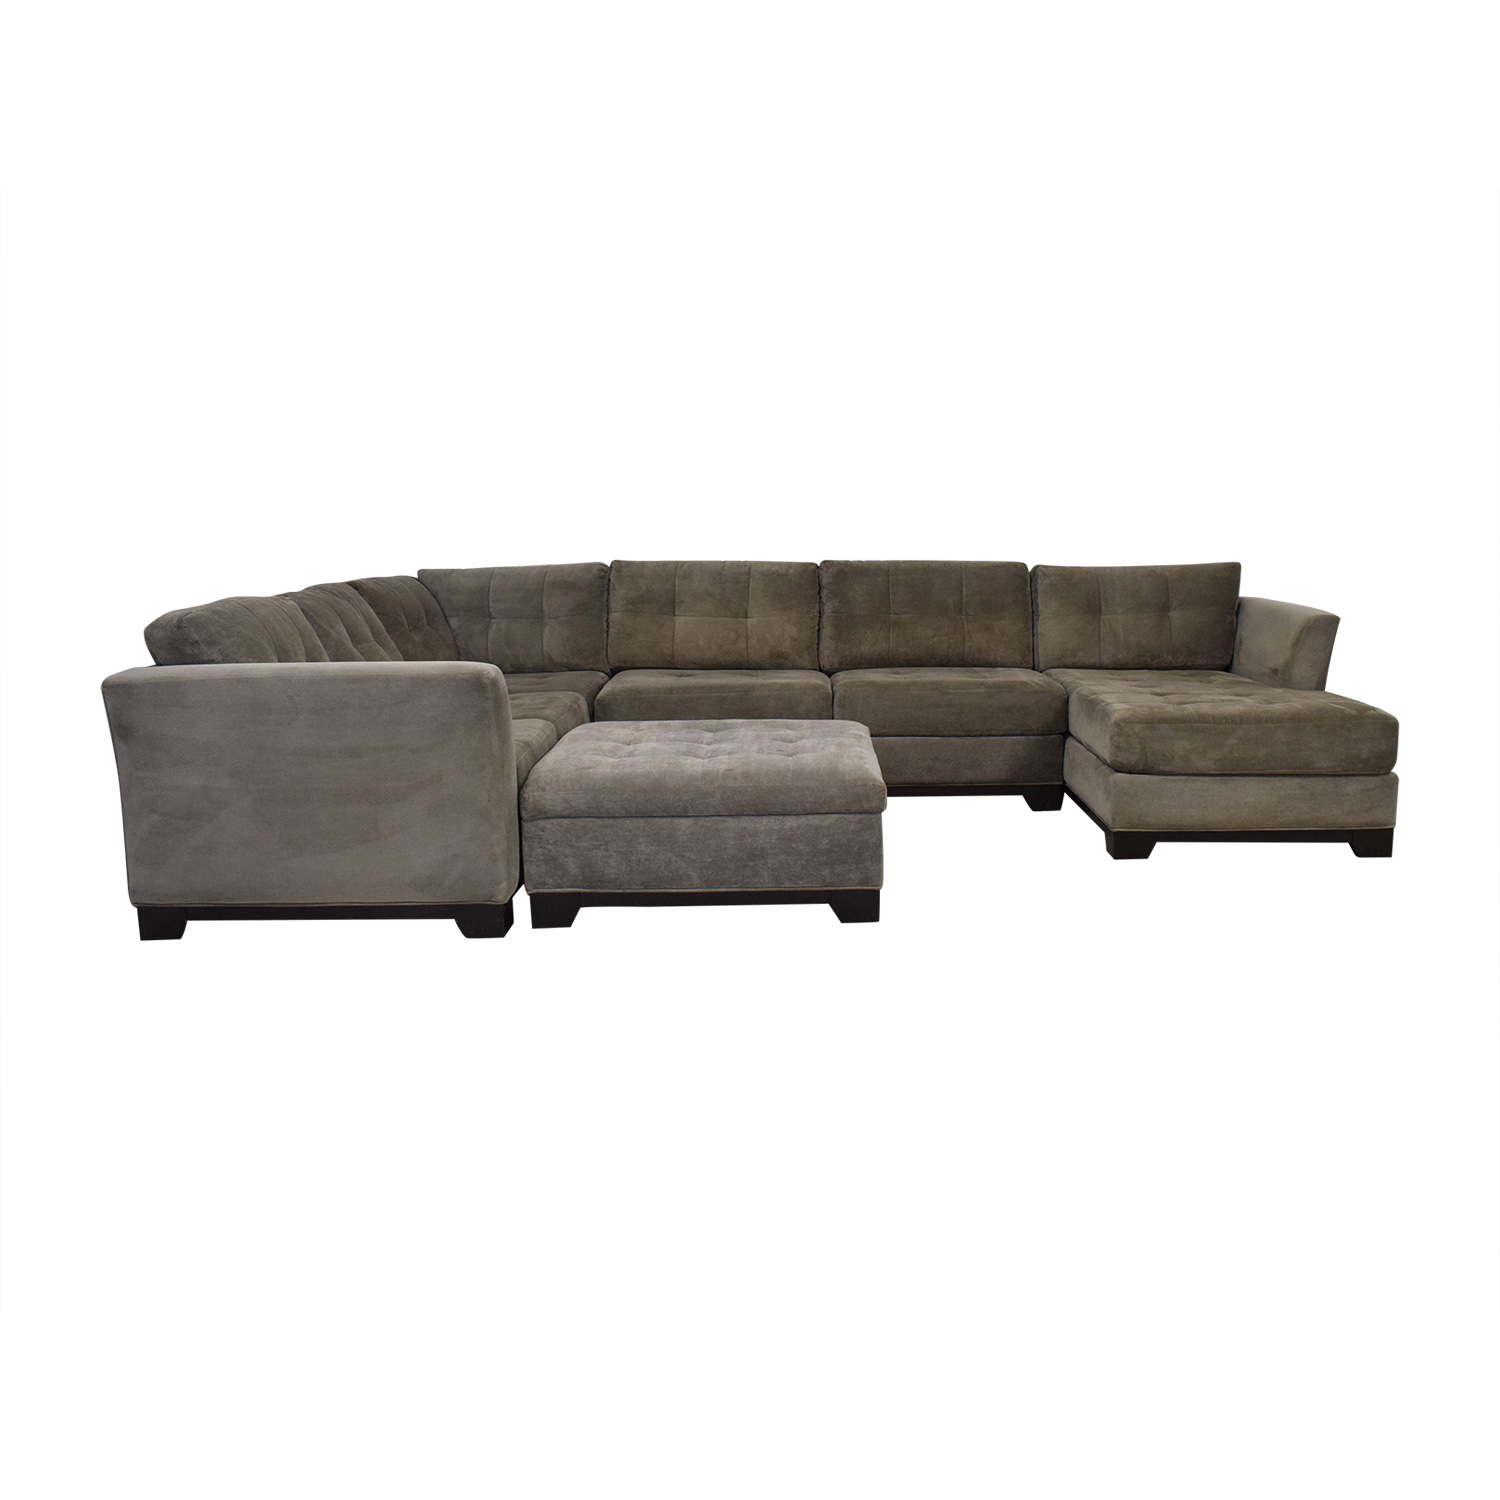 Macy's Macy's Elliot Chaise Sectional Sofa with Ottoman nj